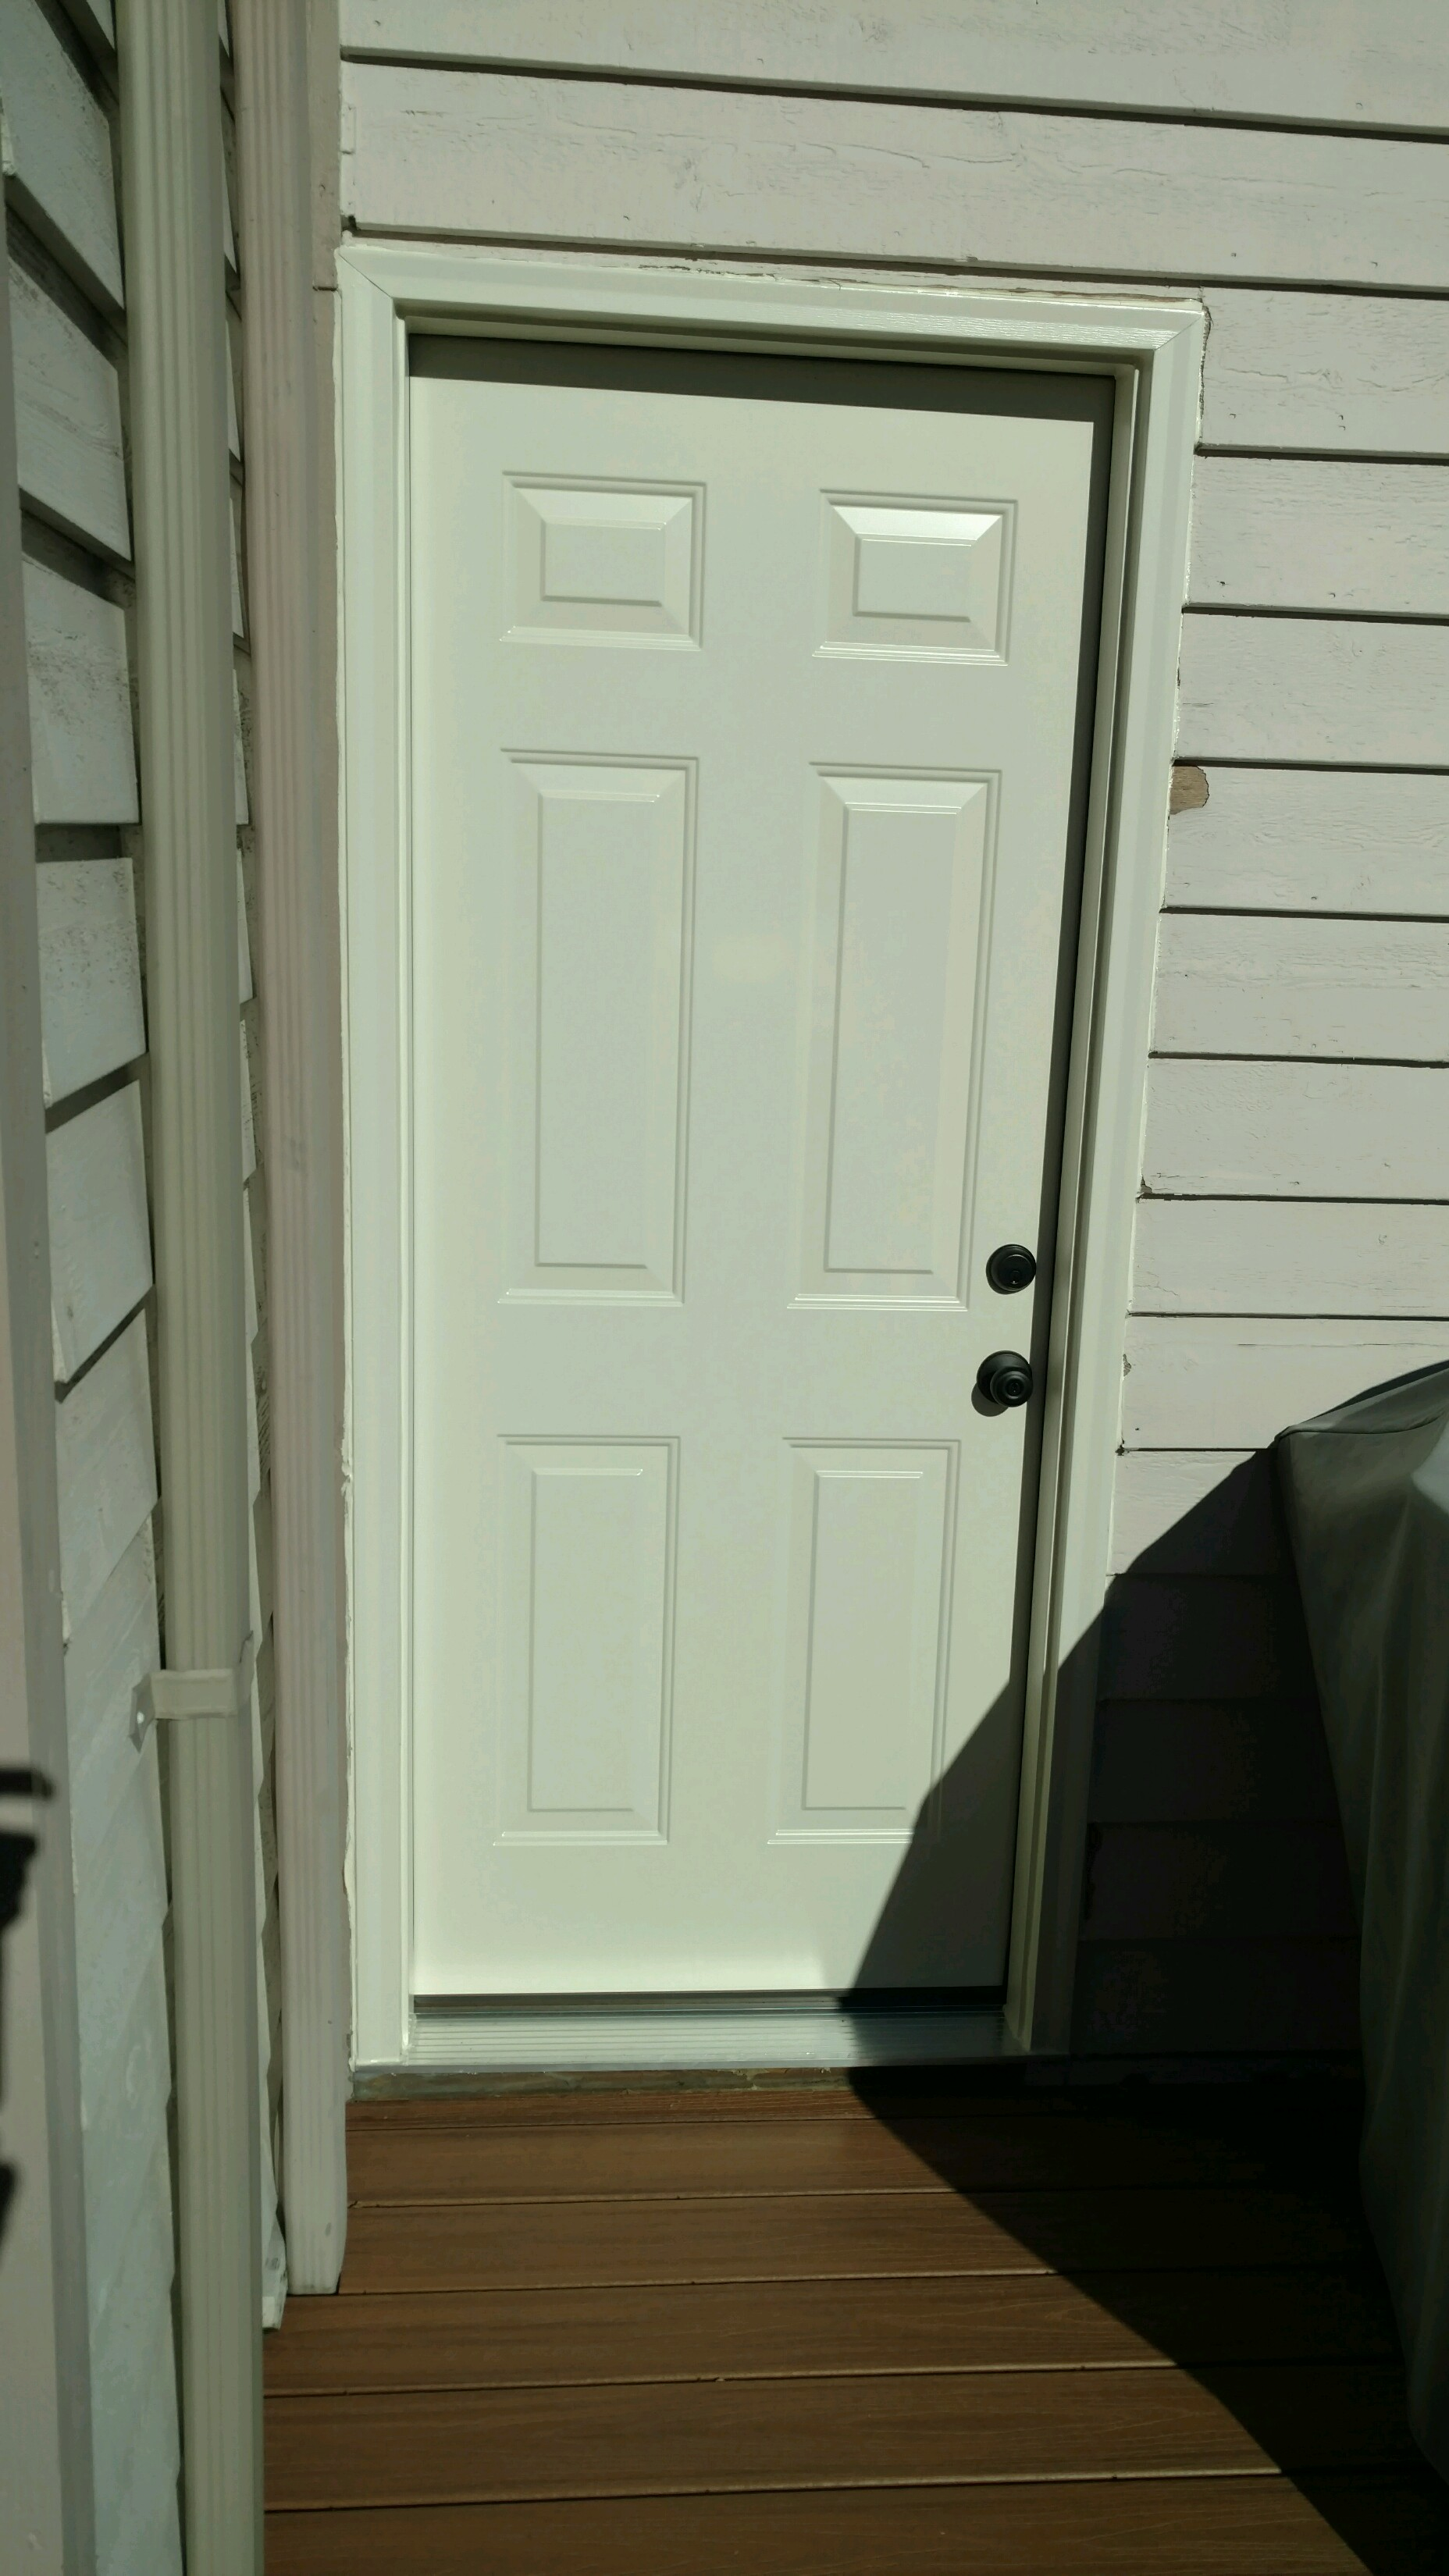 Jfk Window And Door Front Door Friday In Liberty Twp For